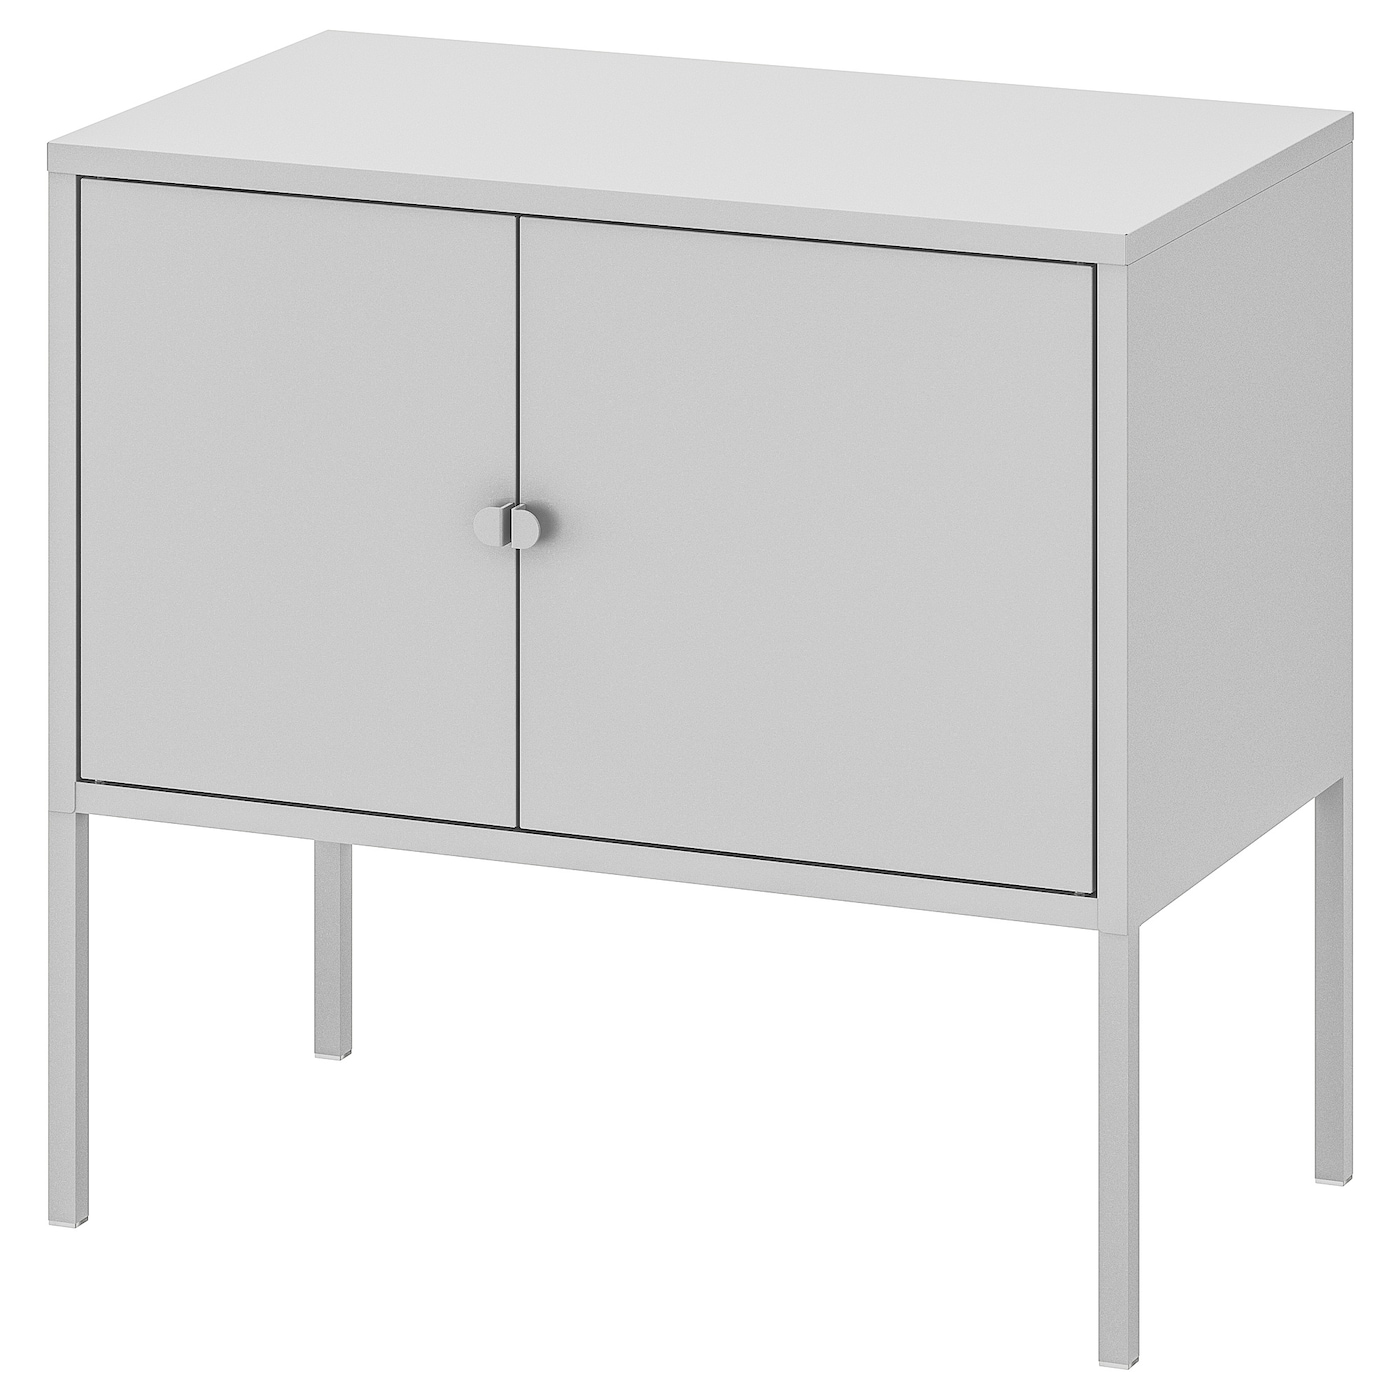 Lixhult Cabinet Metal Grey Ikea Switzerland